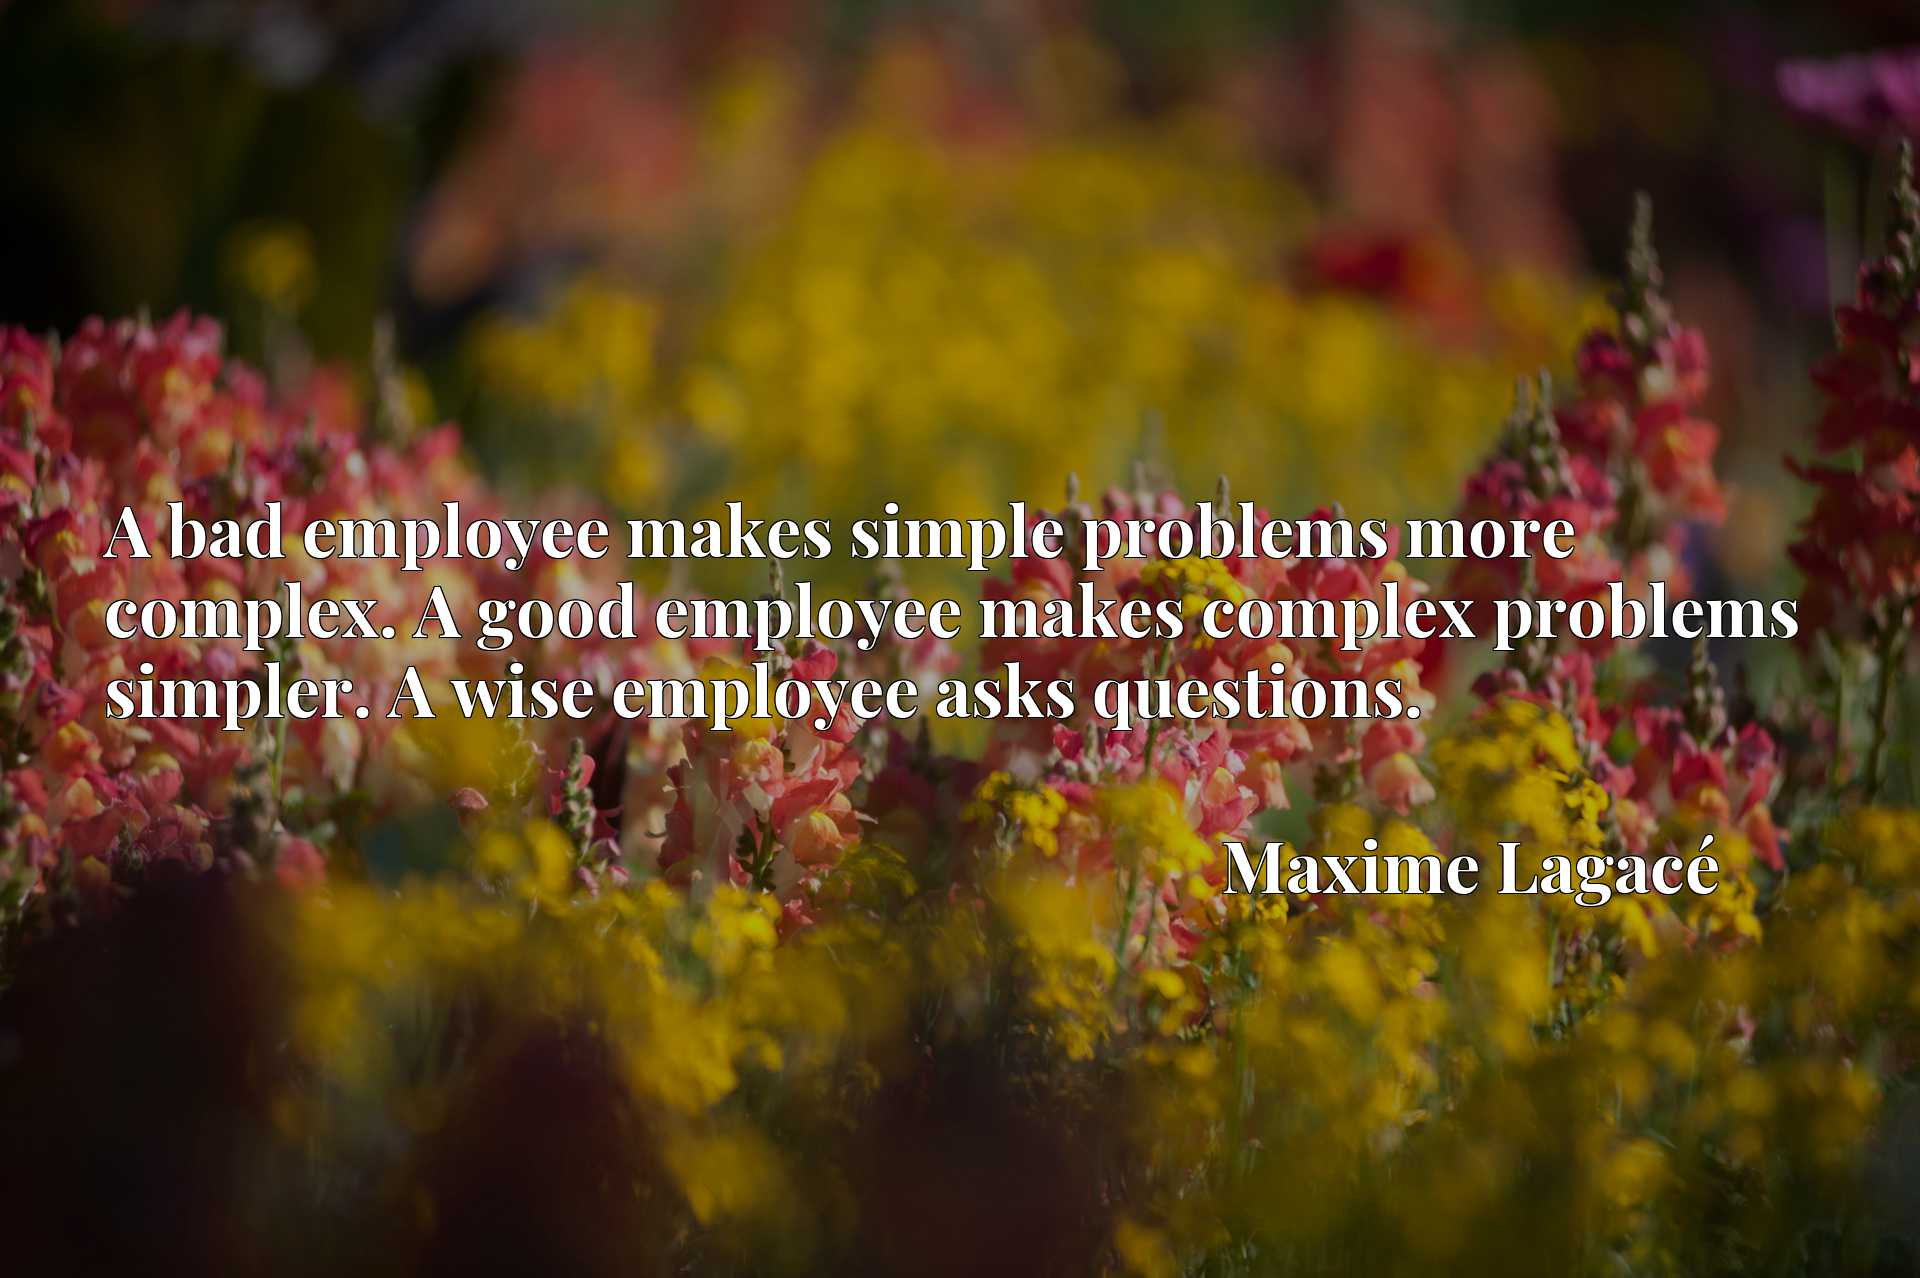 A bad employee makes simple problems more complex. A good employee makes complex problems simpler. A wise employee asks questions.